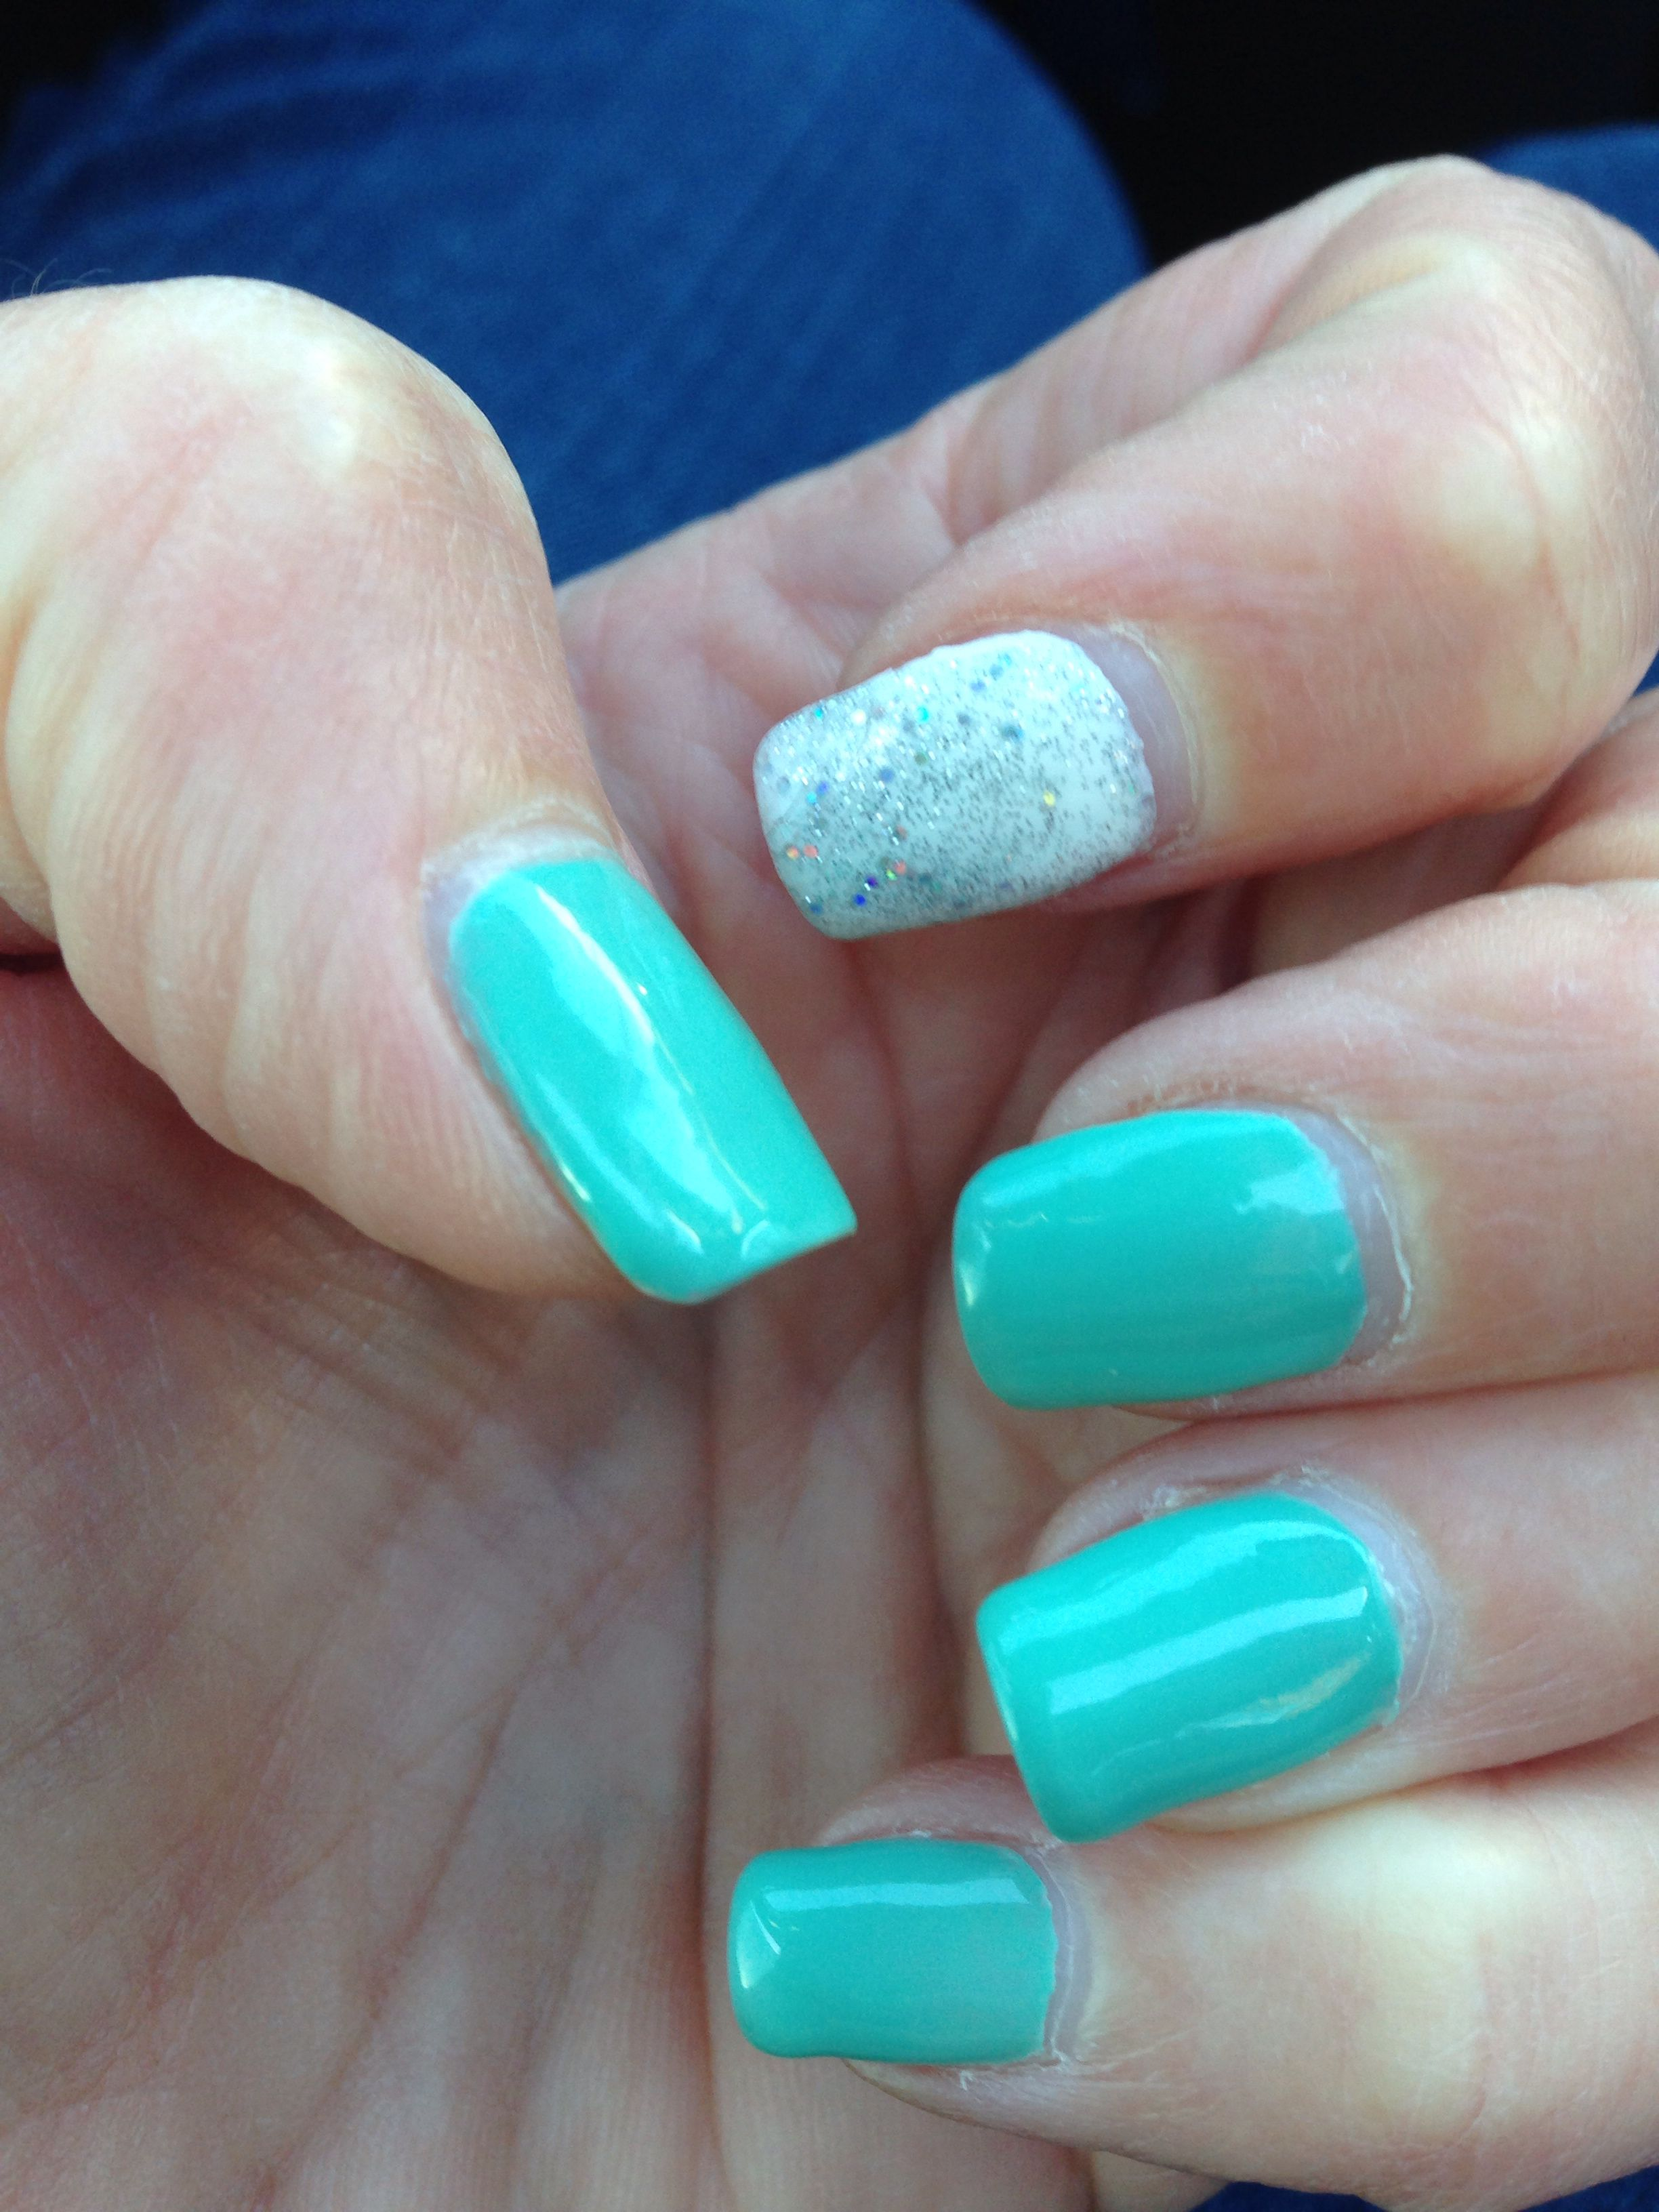 Teal and silver and white nailes